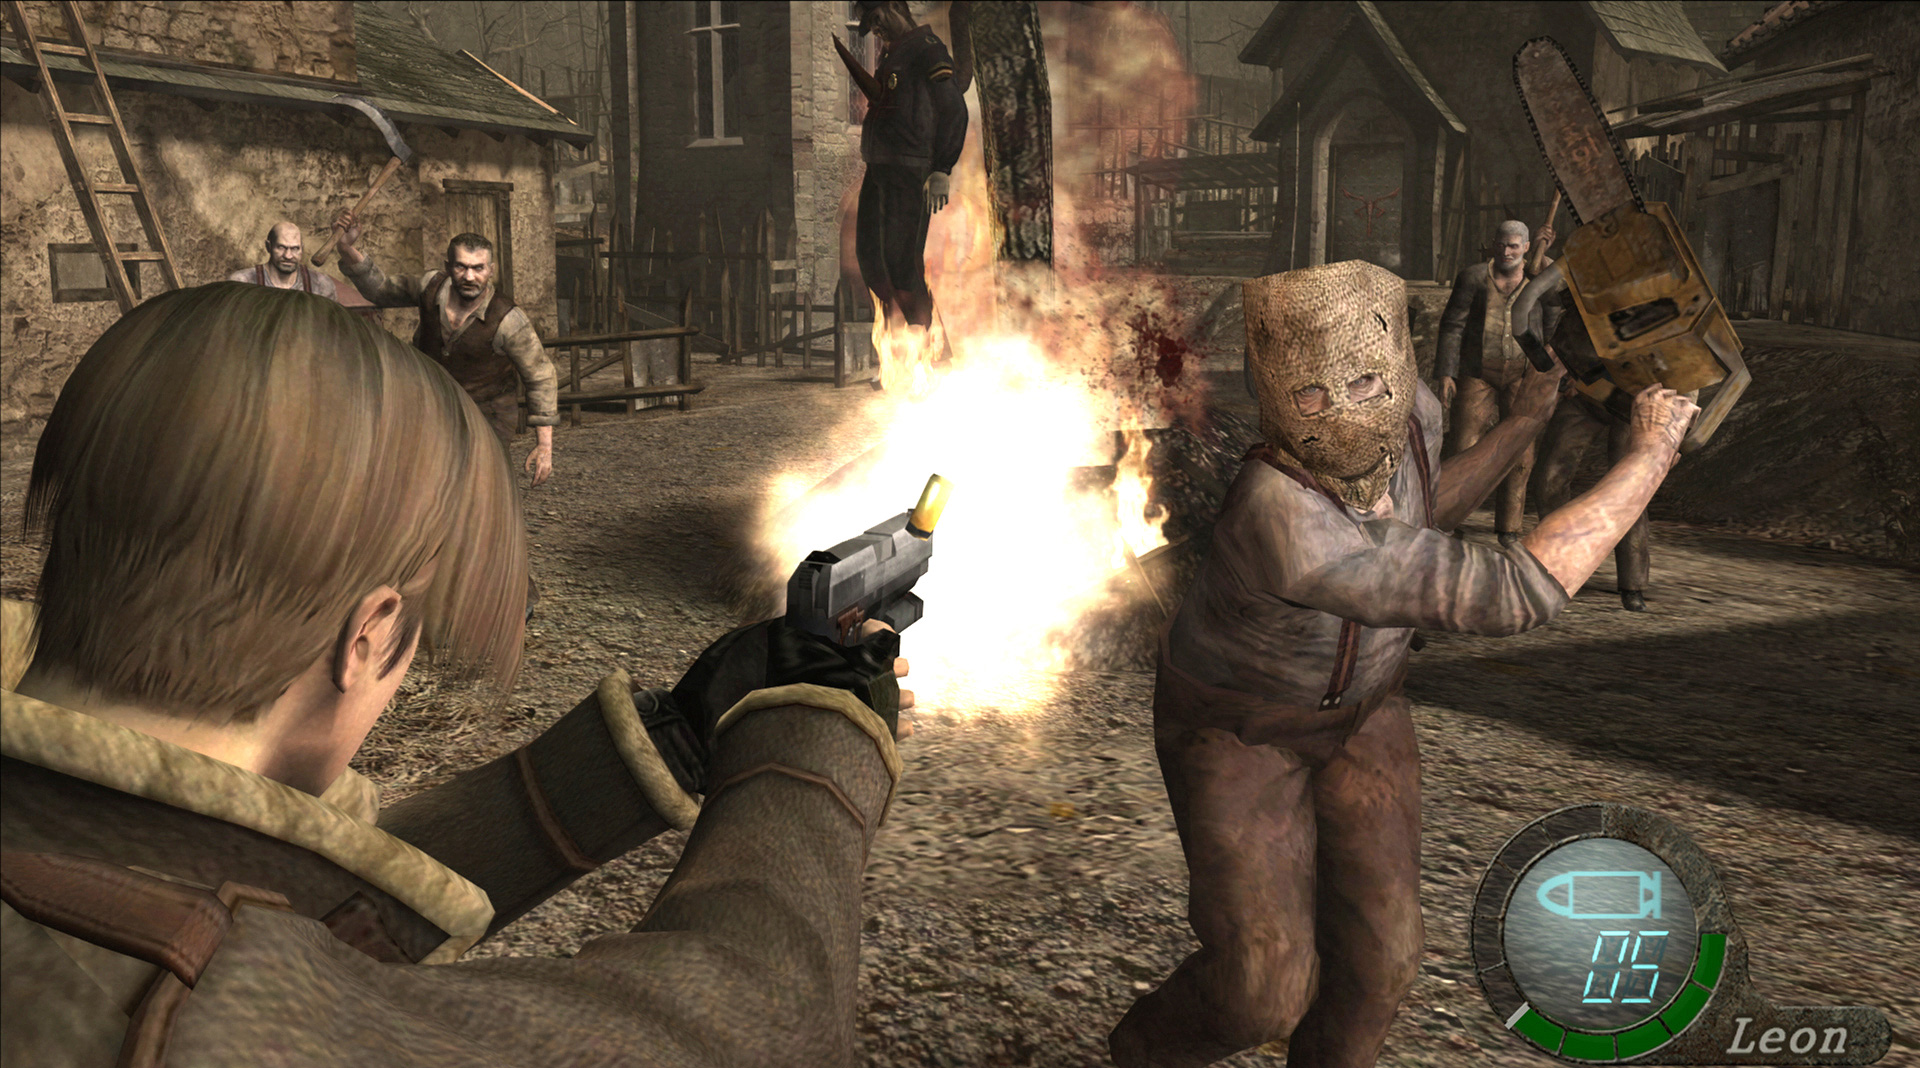 Resident Evil 4's village is a defining moment